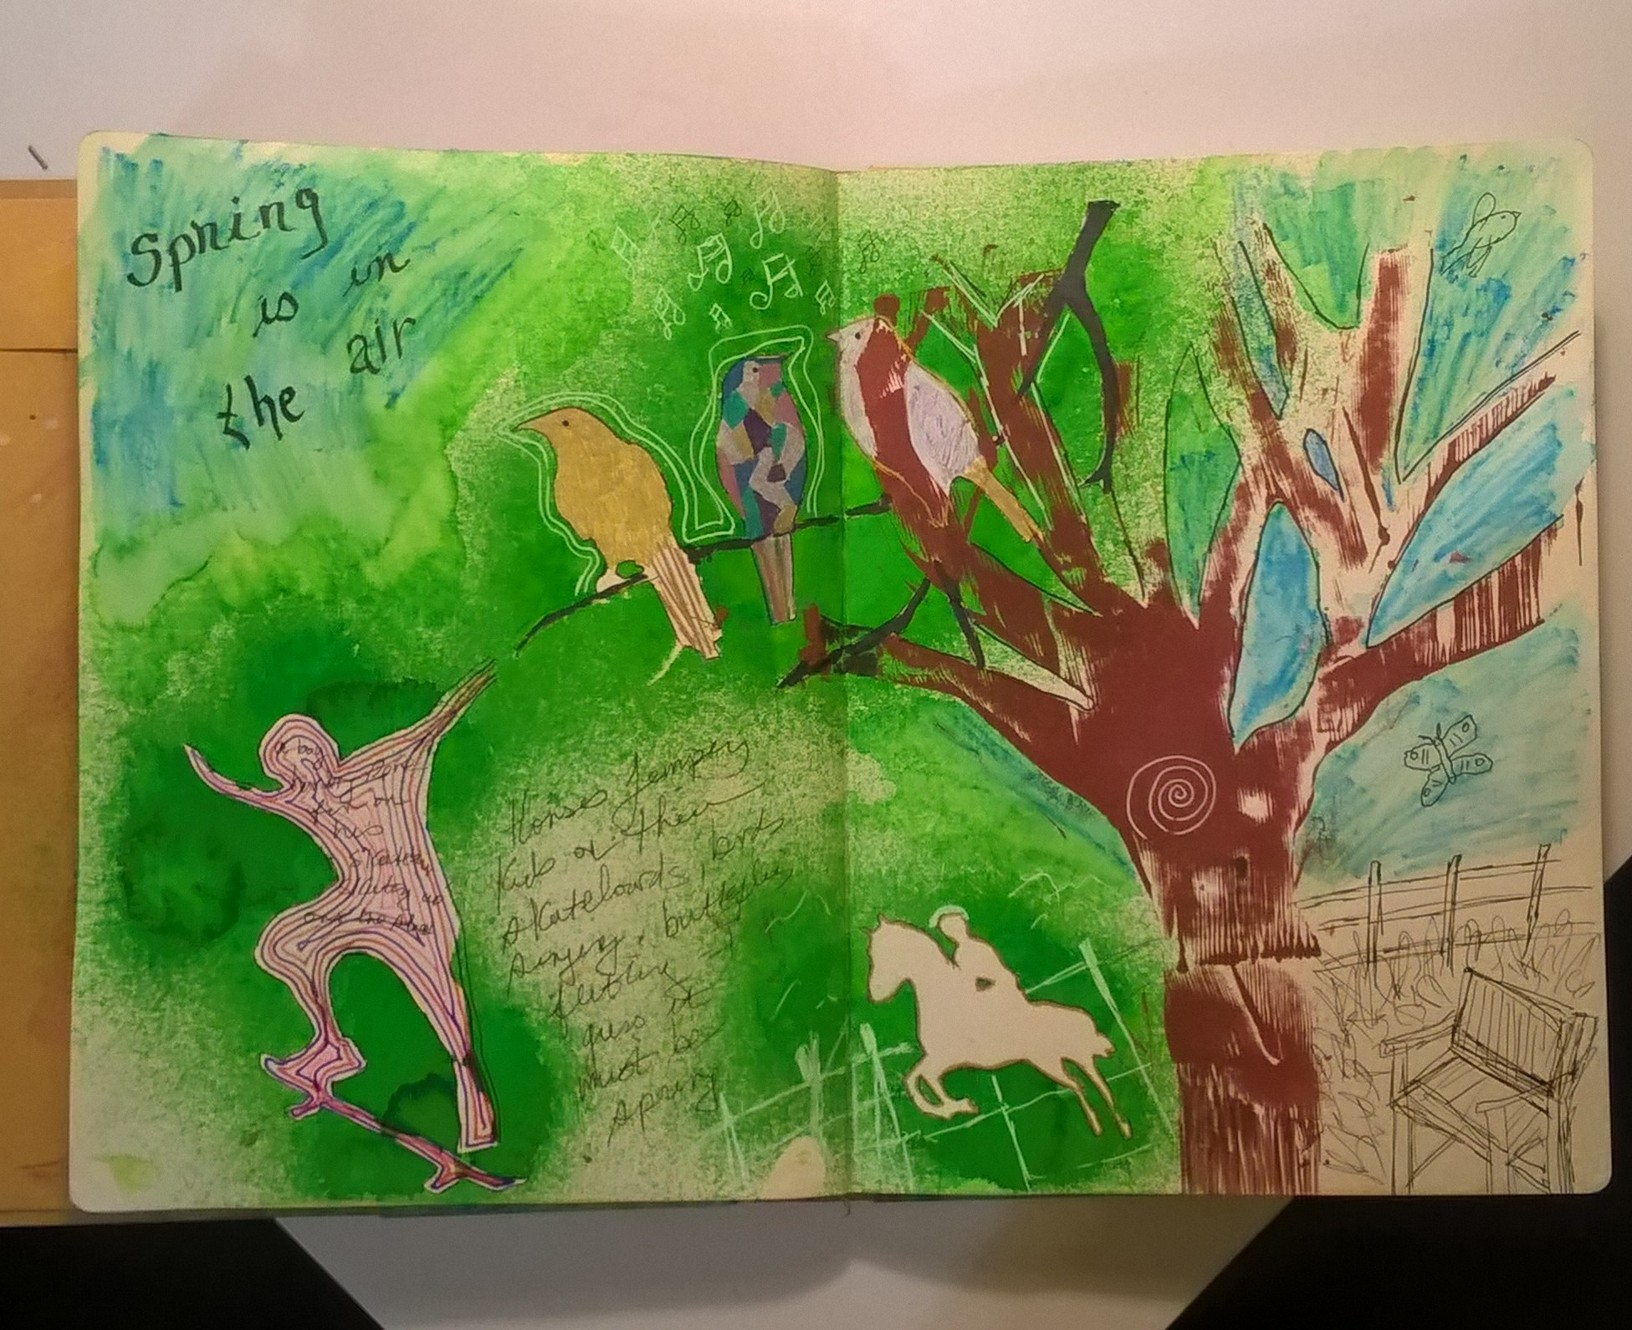 mixed media art with stenciled images of tree horse and birds